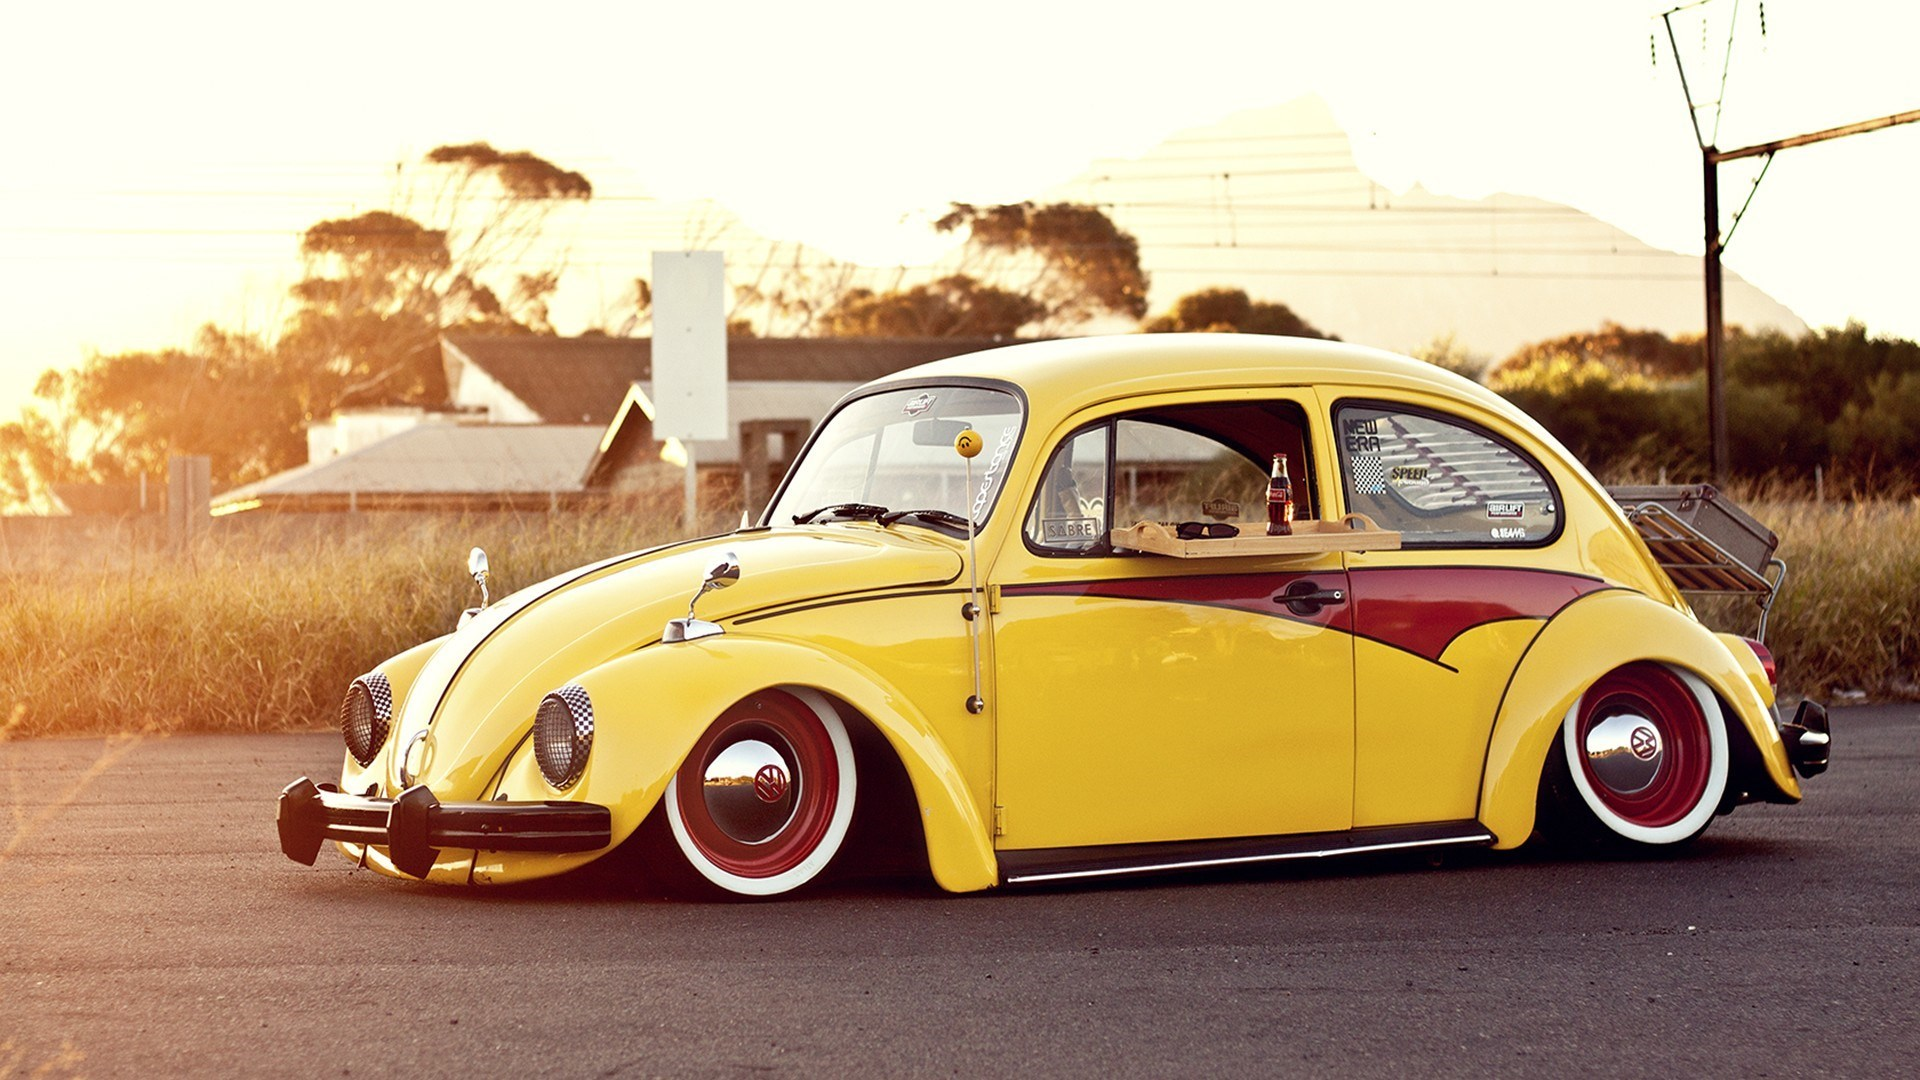 Volkswagen Beetle Yellow Muscle Cars Wallpaper